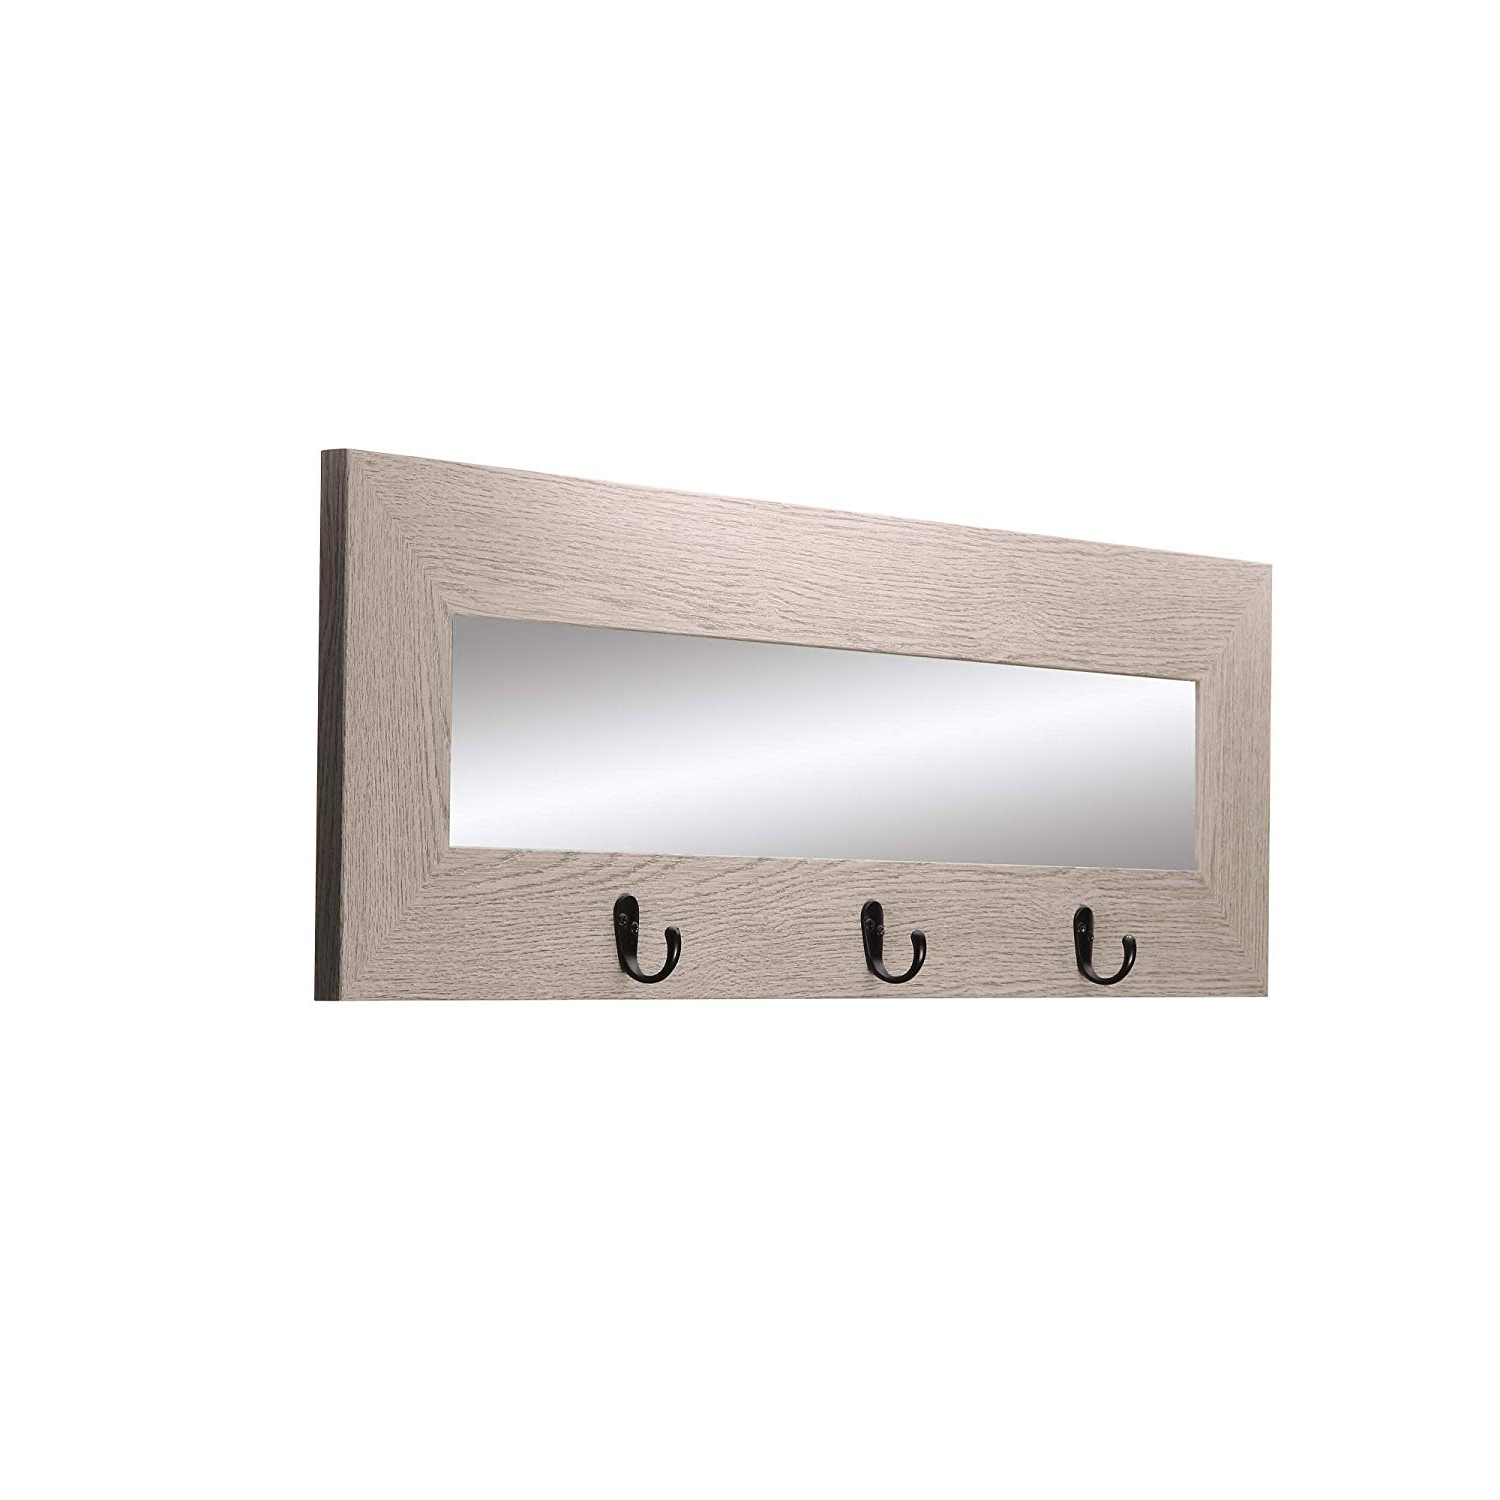 Widely Used Amazon: Brandtworks Last Look Wall Mirror With Hooks: Home & Kitchen Intended For Wall Mirrors With Hooks (View 7 of 20)